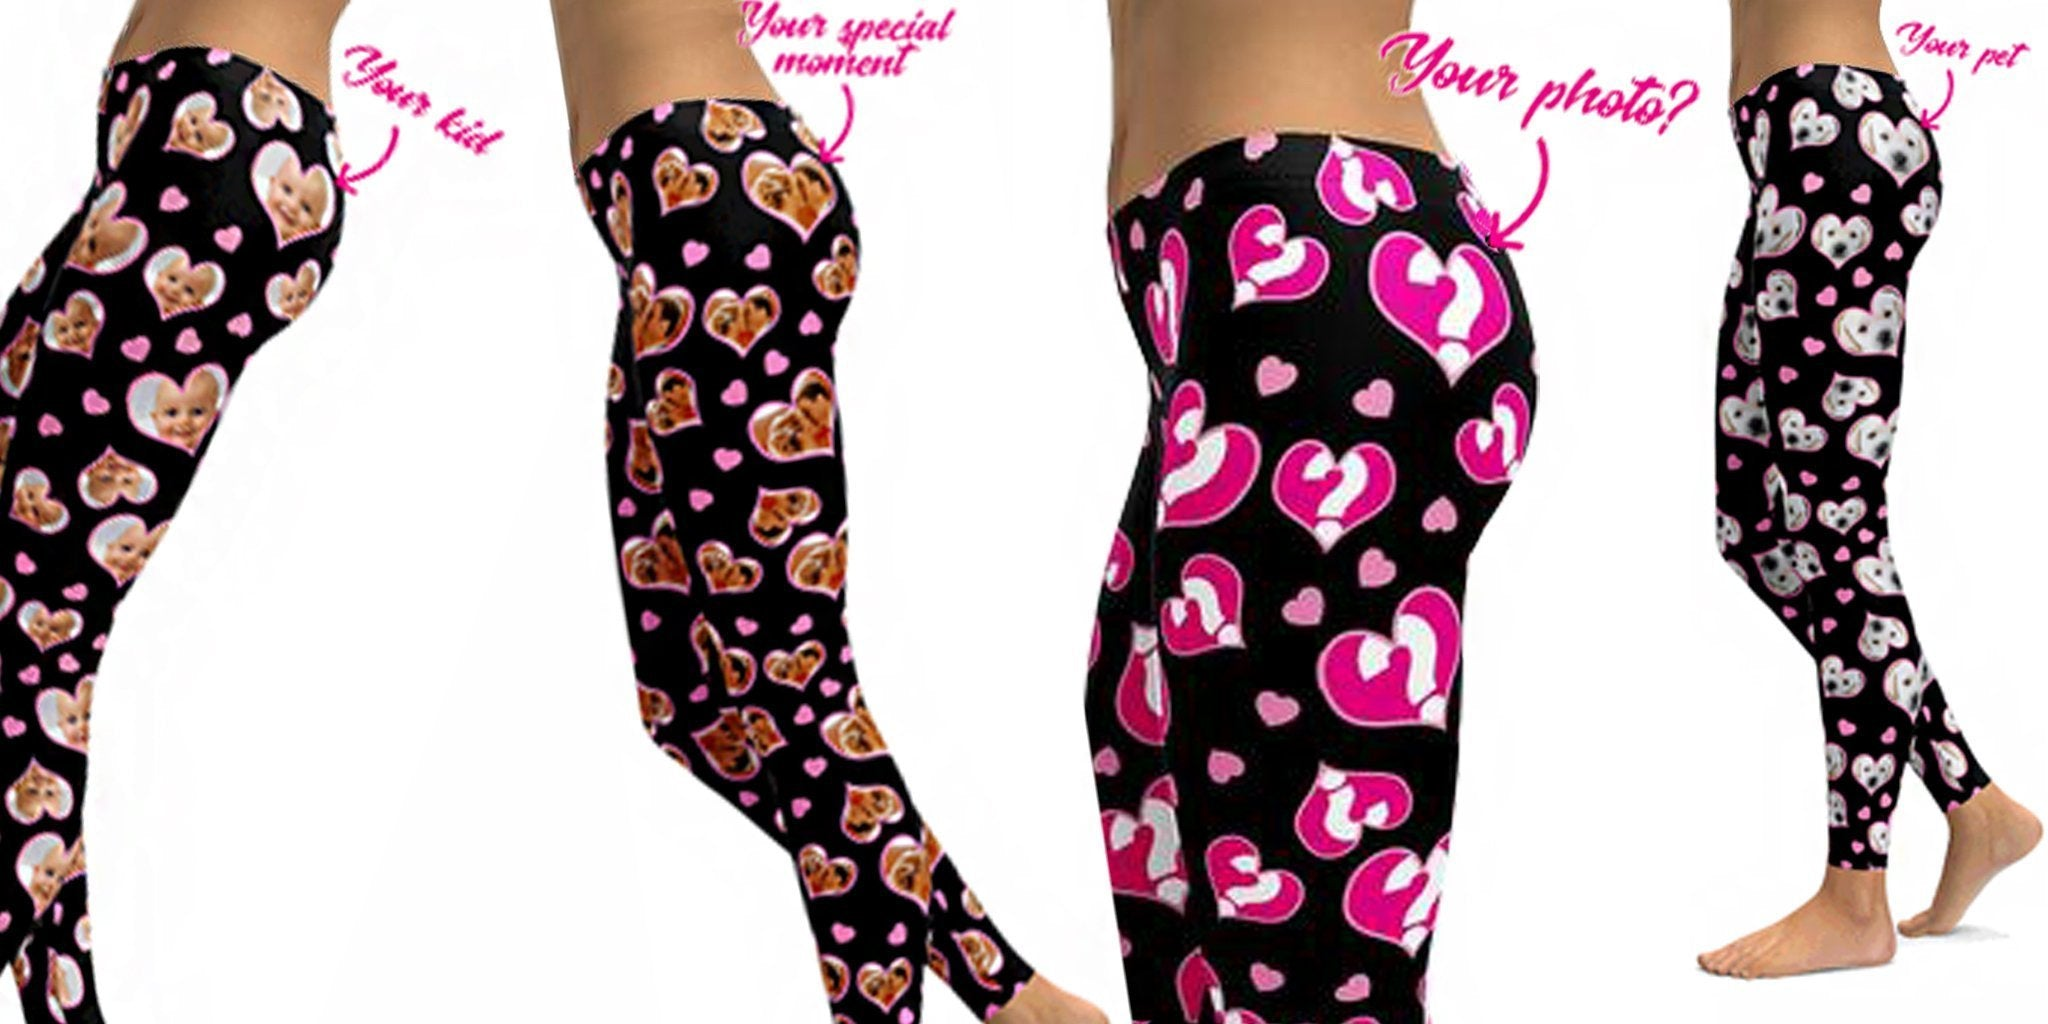 Stuck On a Christmas Gift for a Special Person? Get Personal with a Pair of Lovable Heart Leggings